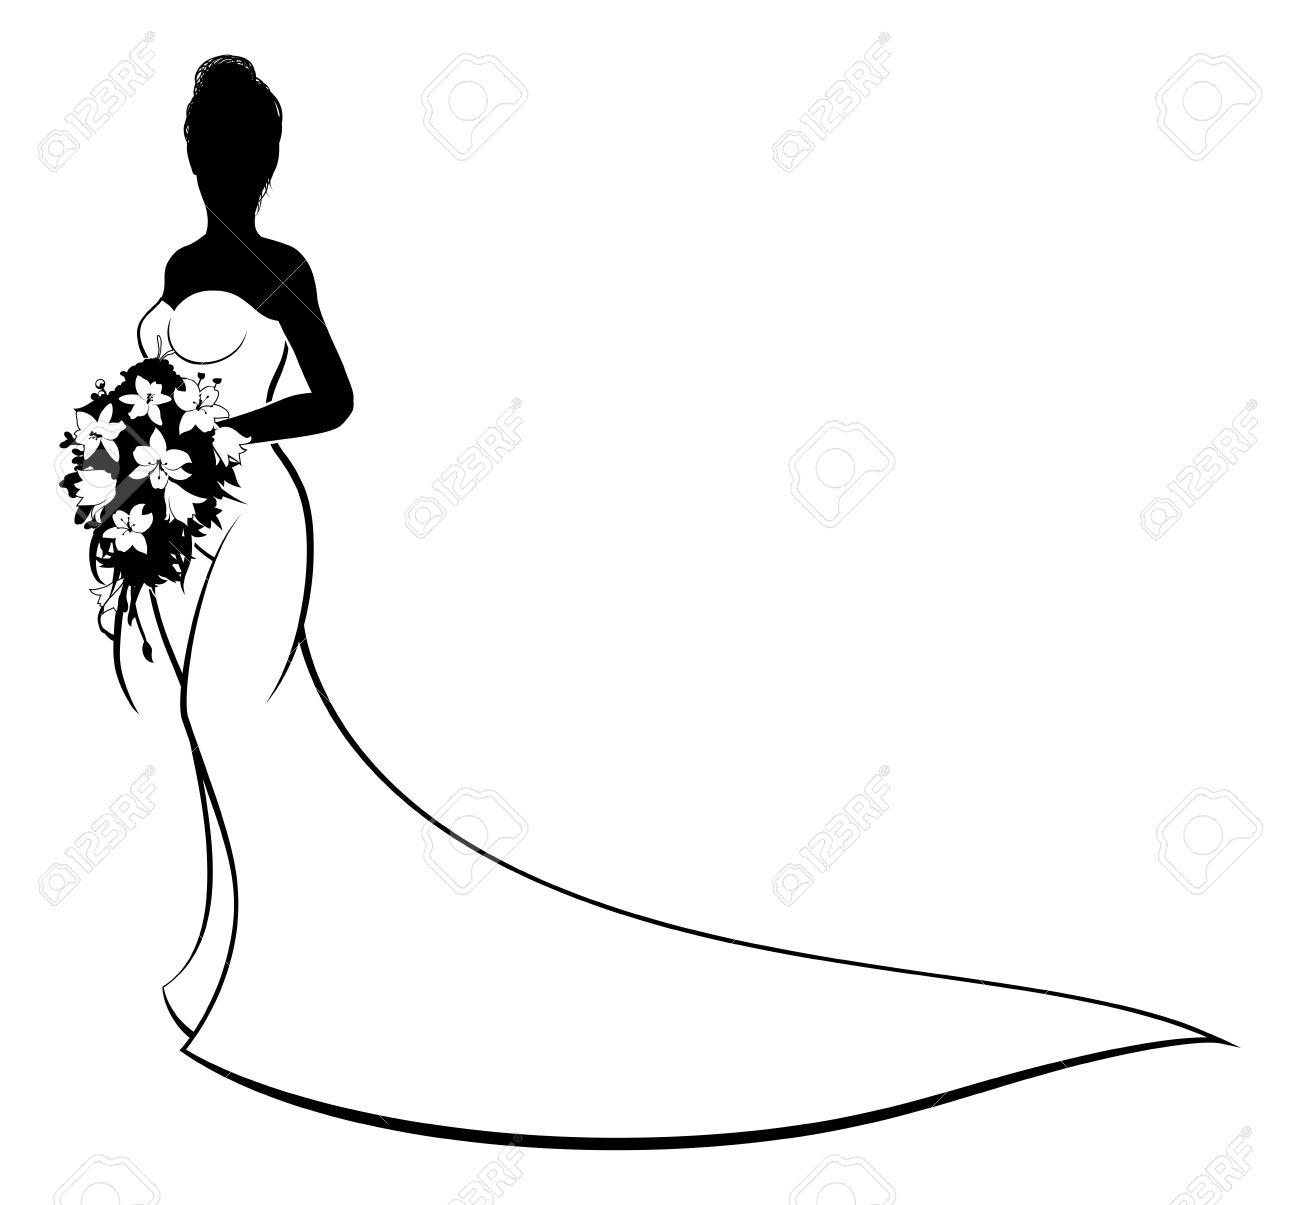 Bride clipart black and white. Free download best